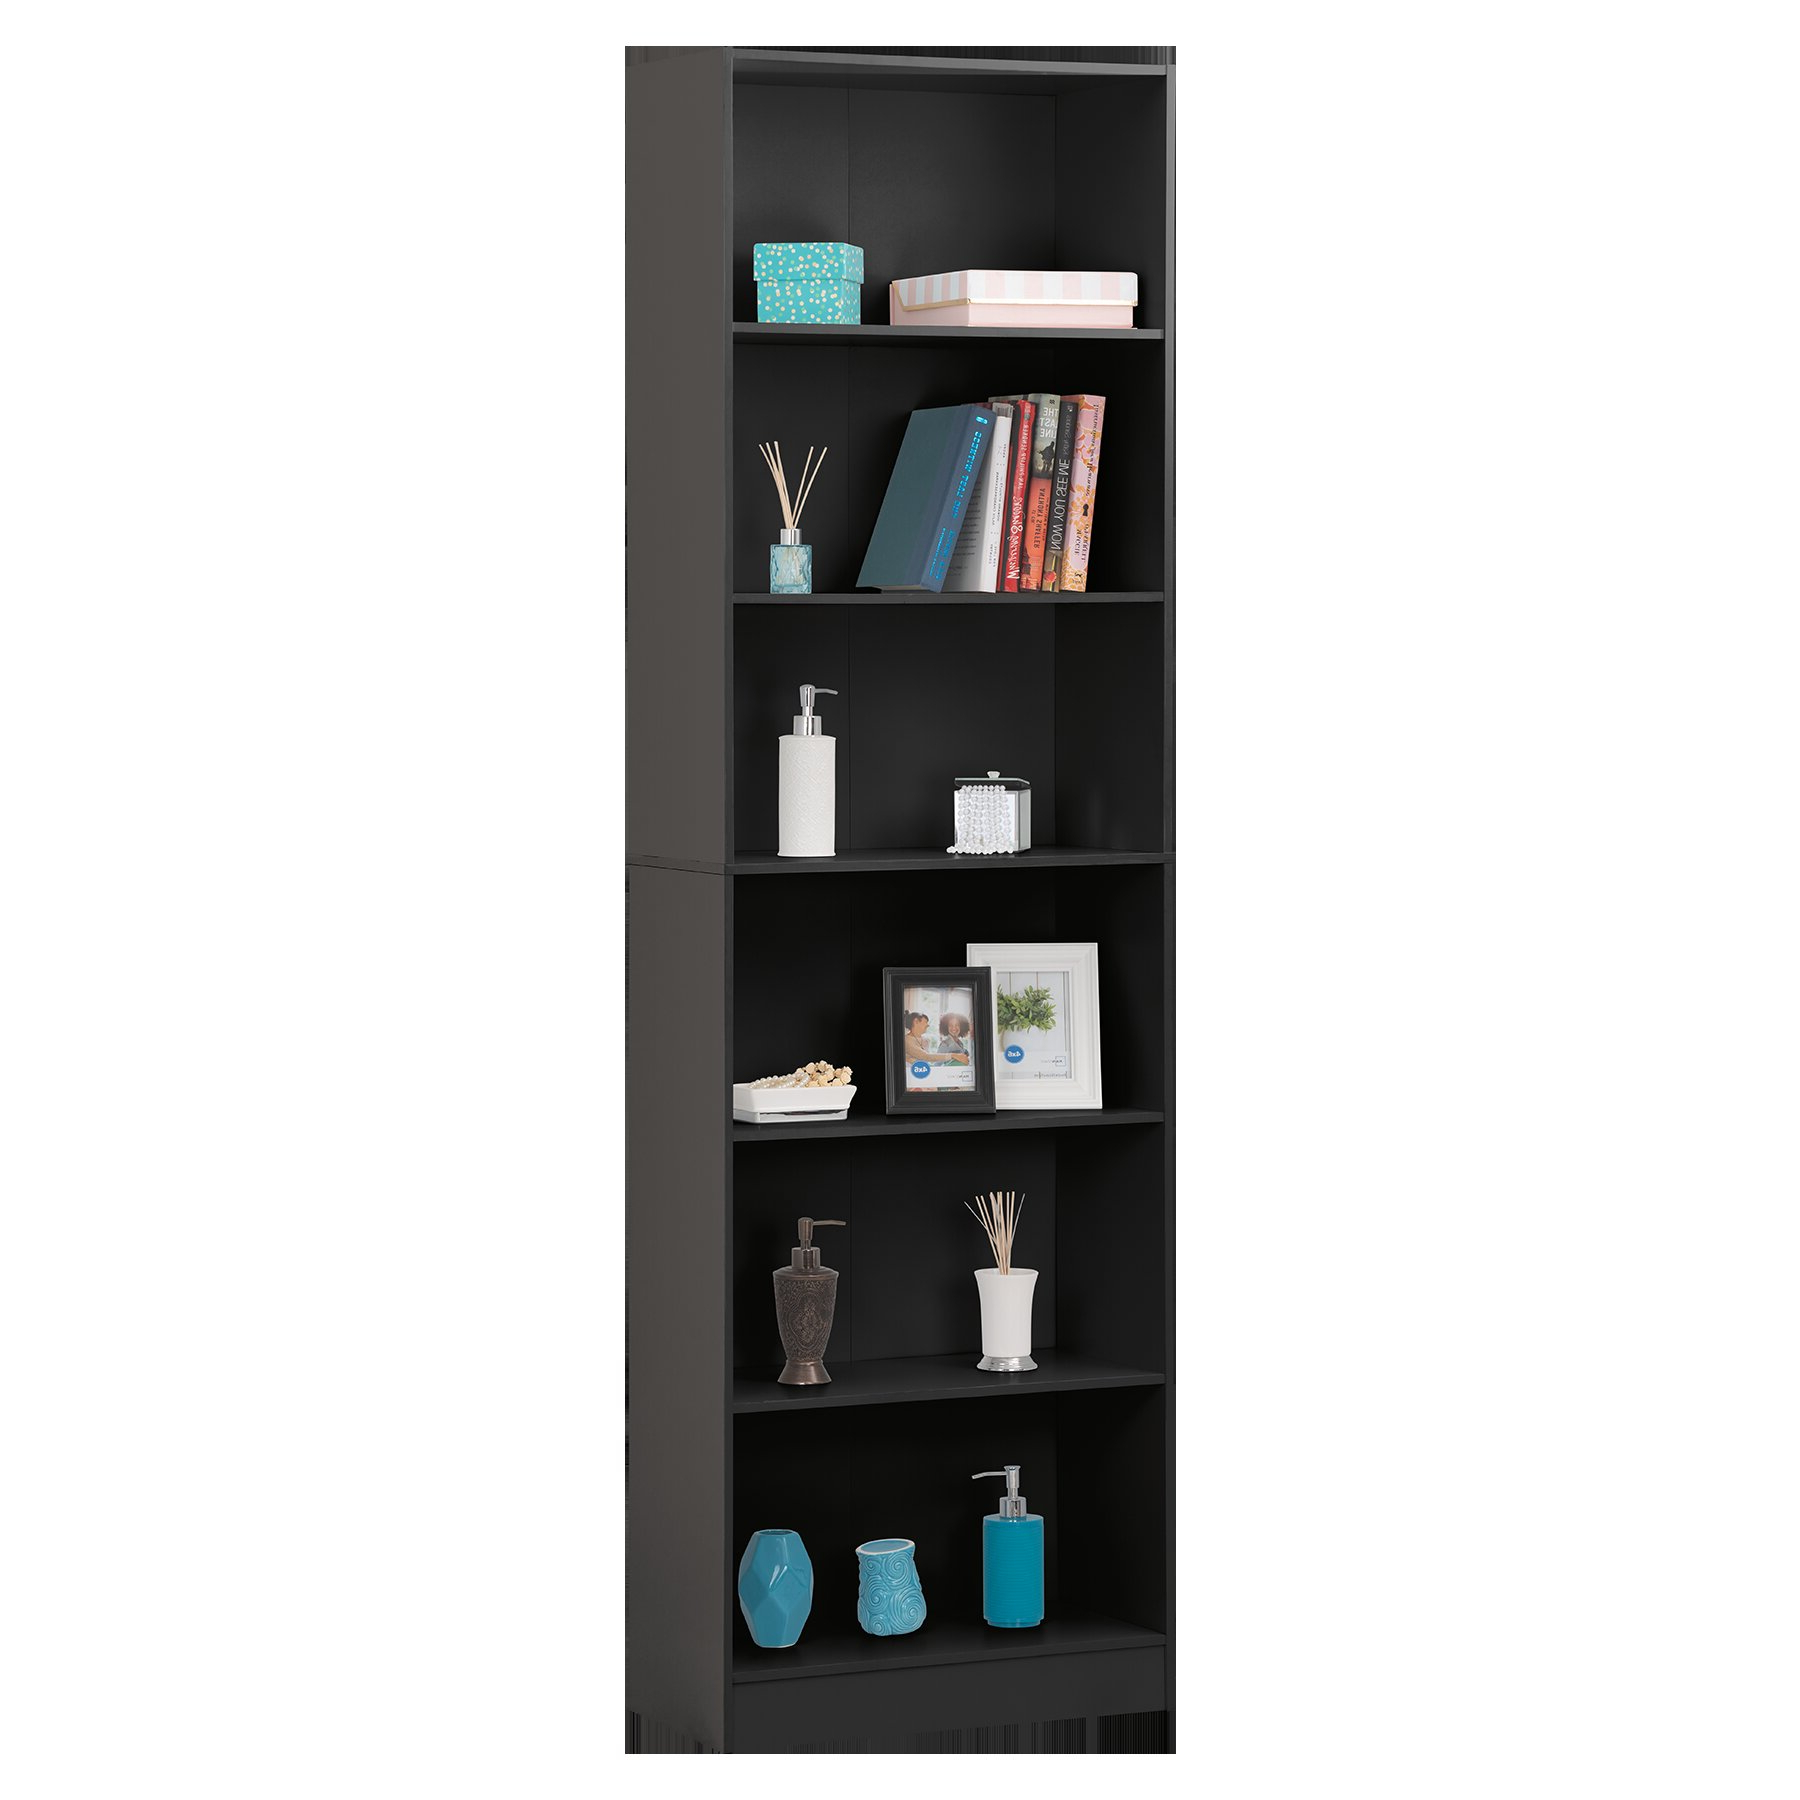 2020 Neubauer 6 Shelve Standard Bookcase Pertaining To Kiley Standard Bookcases (Gallery 18 of 20)